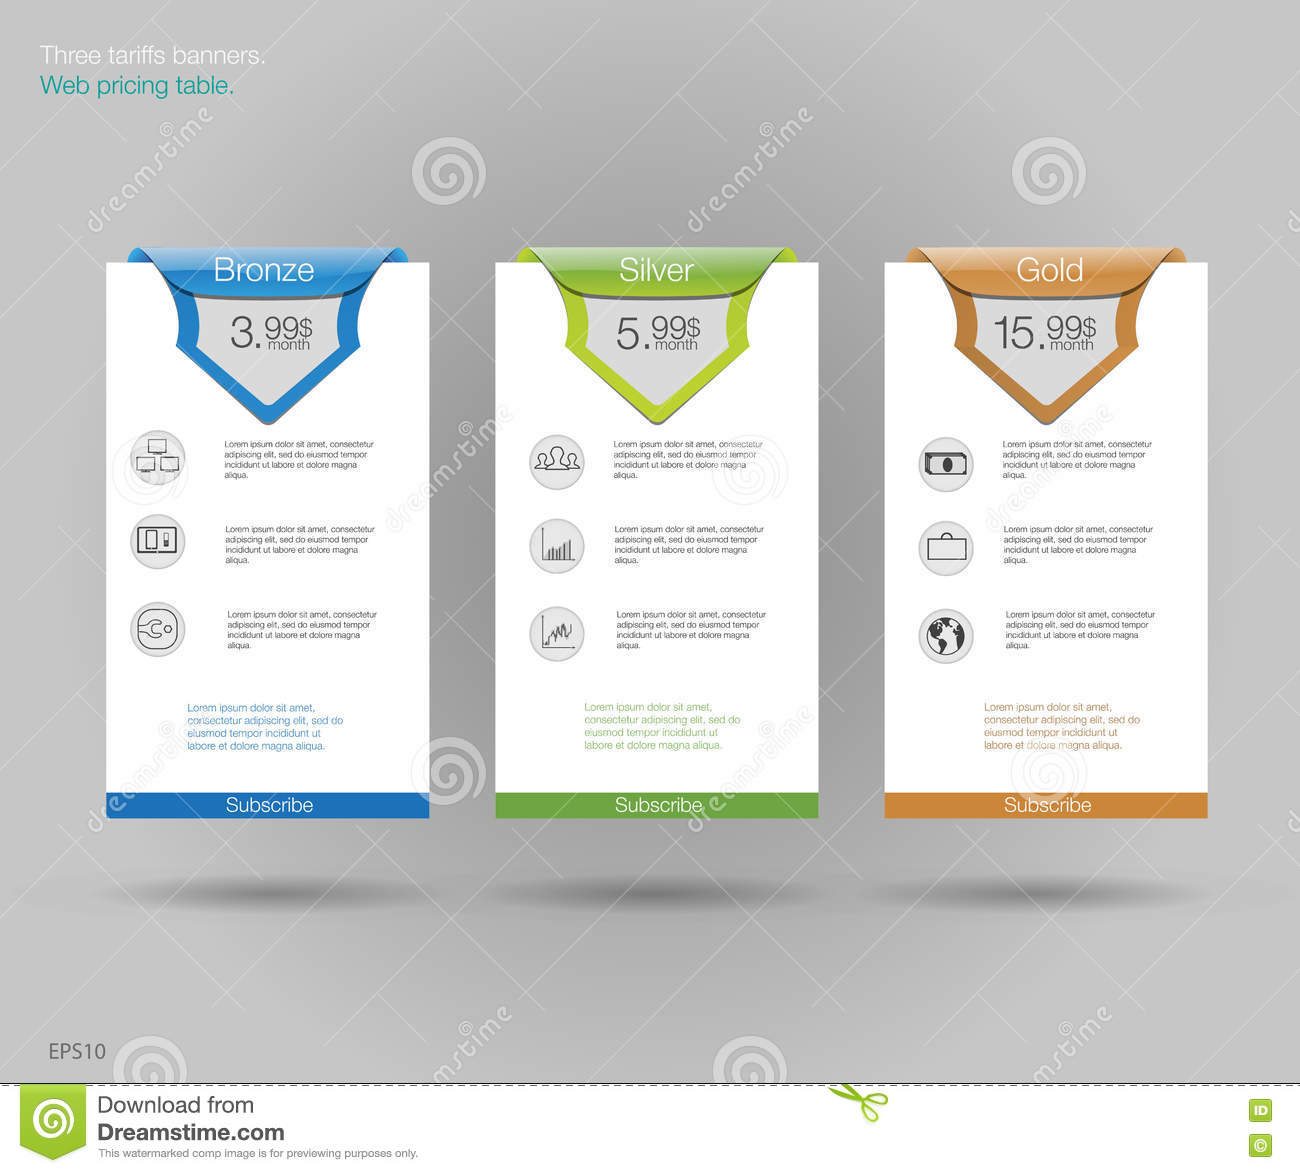 three tariffs banners web pricing table vector design for web app